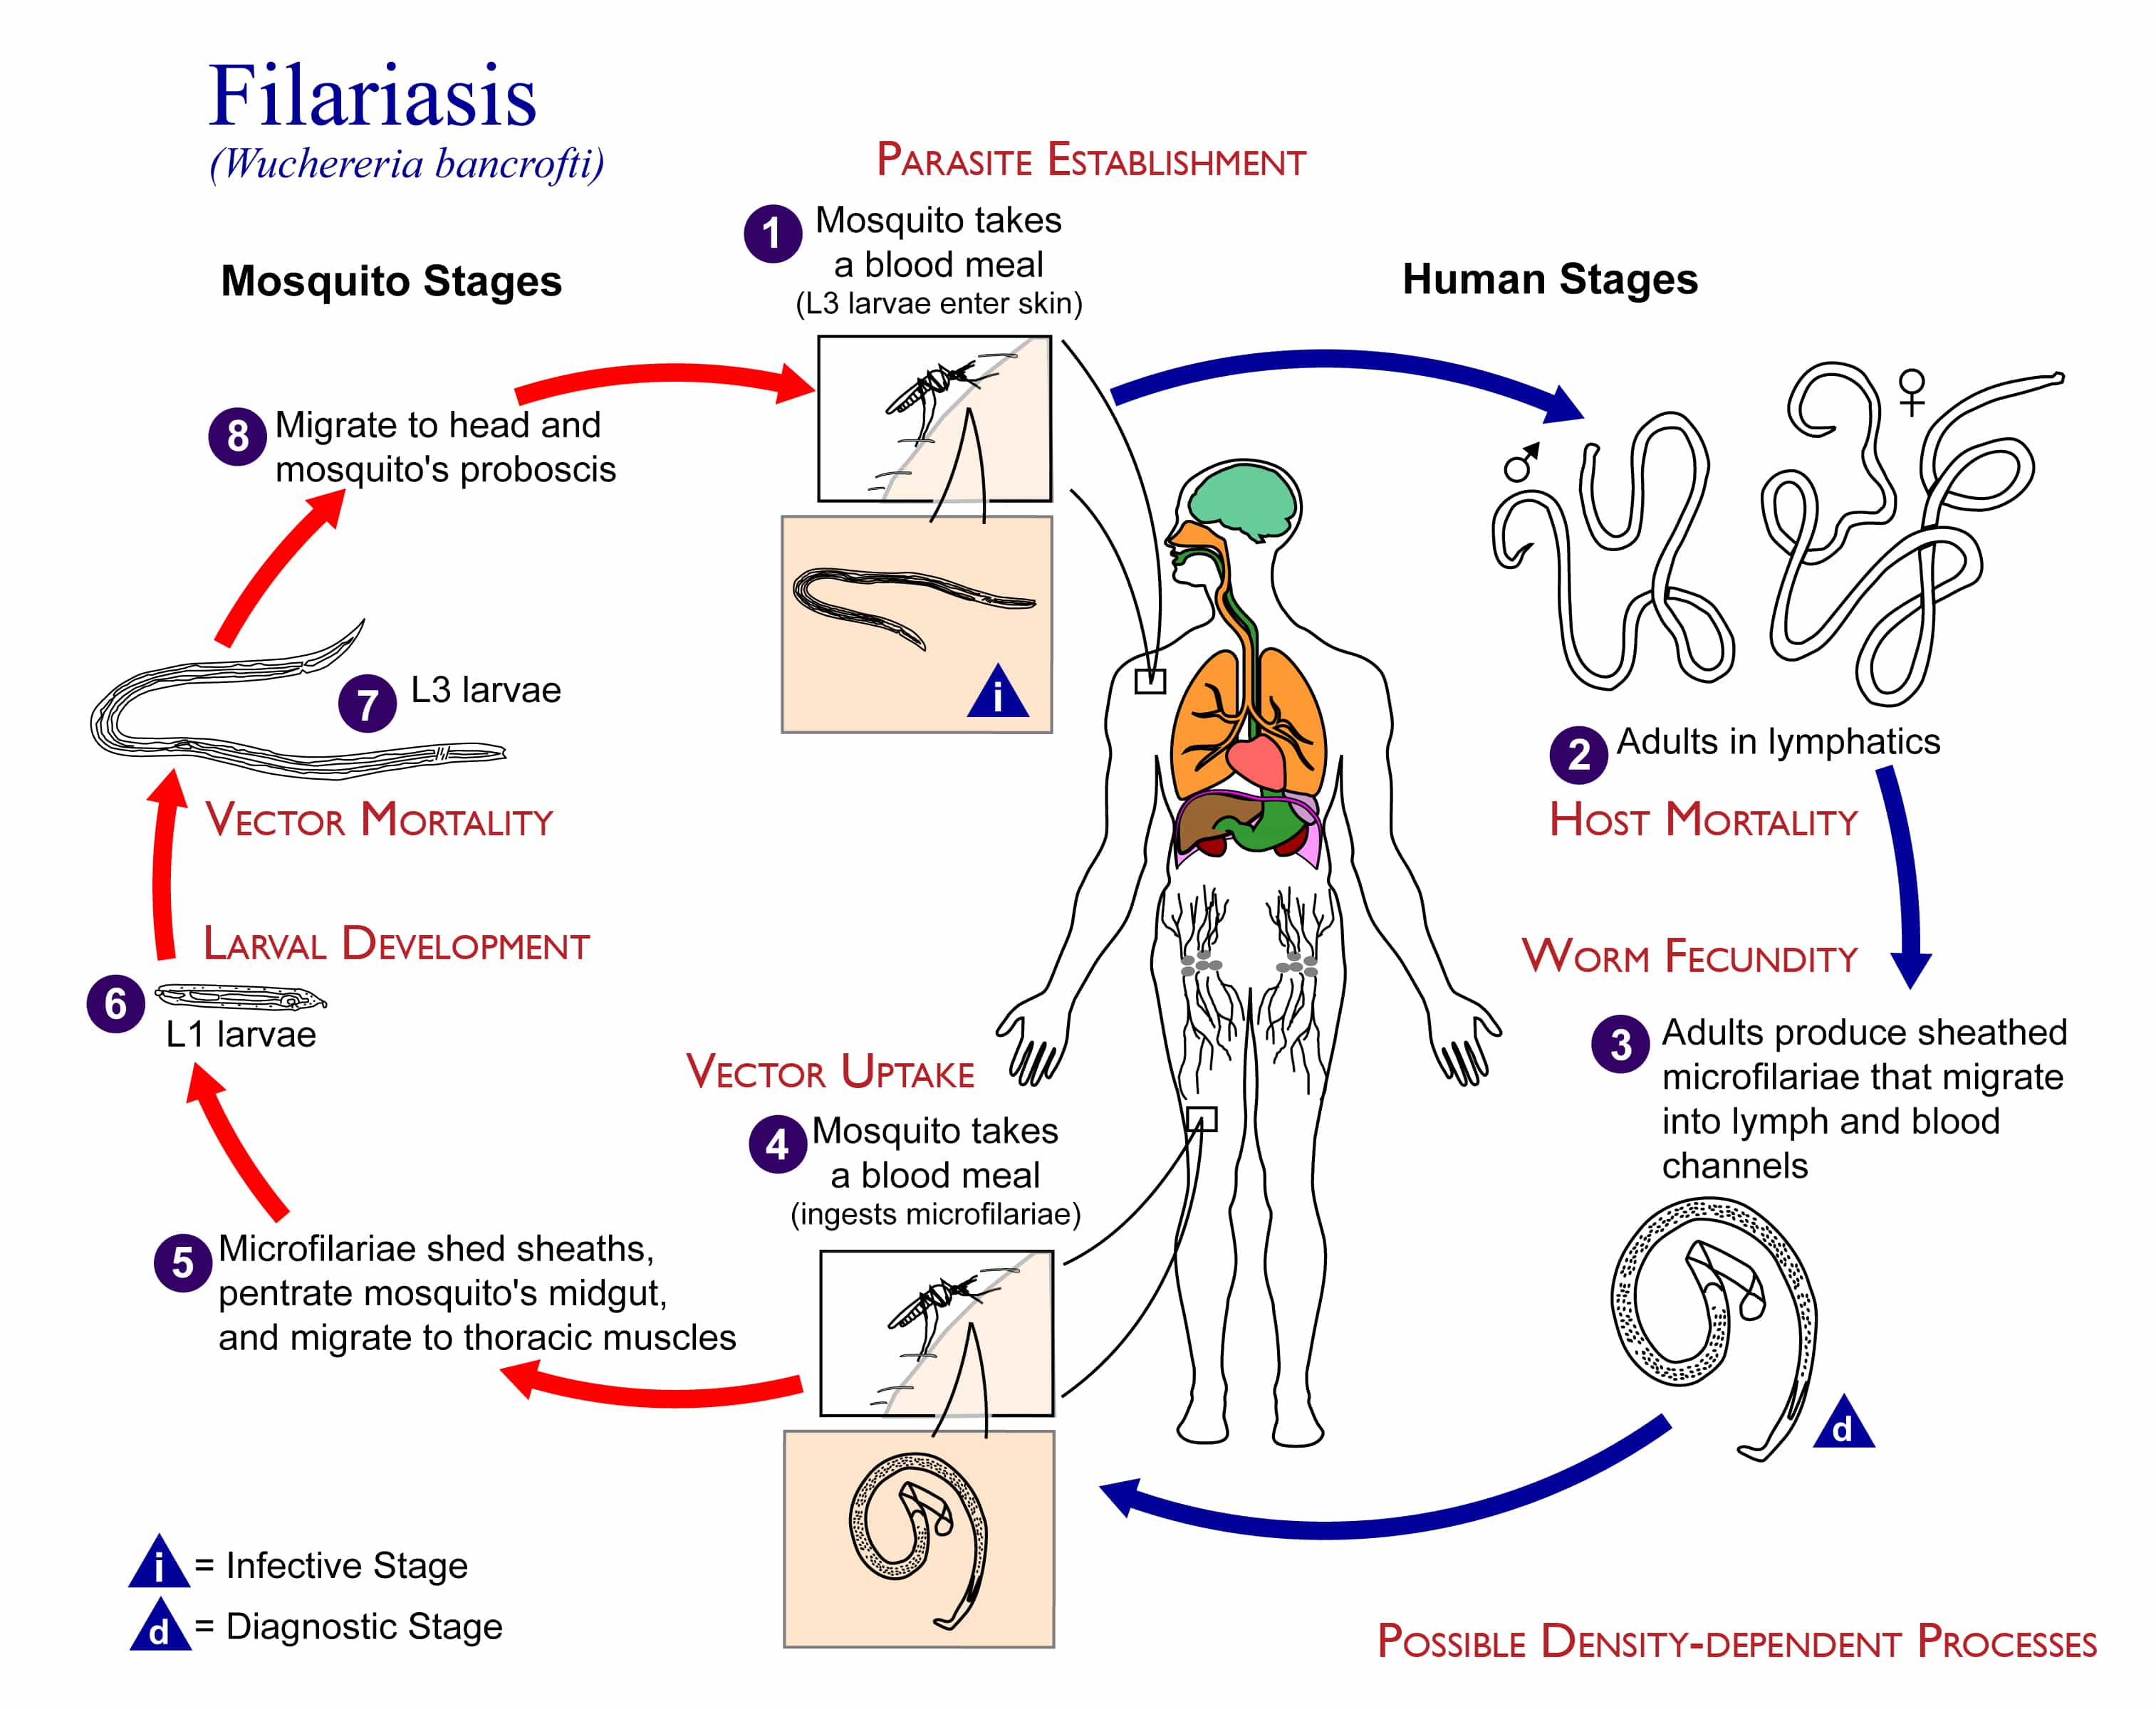 Filariasis Life cycle of Wuchereria bancrofti